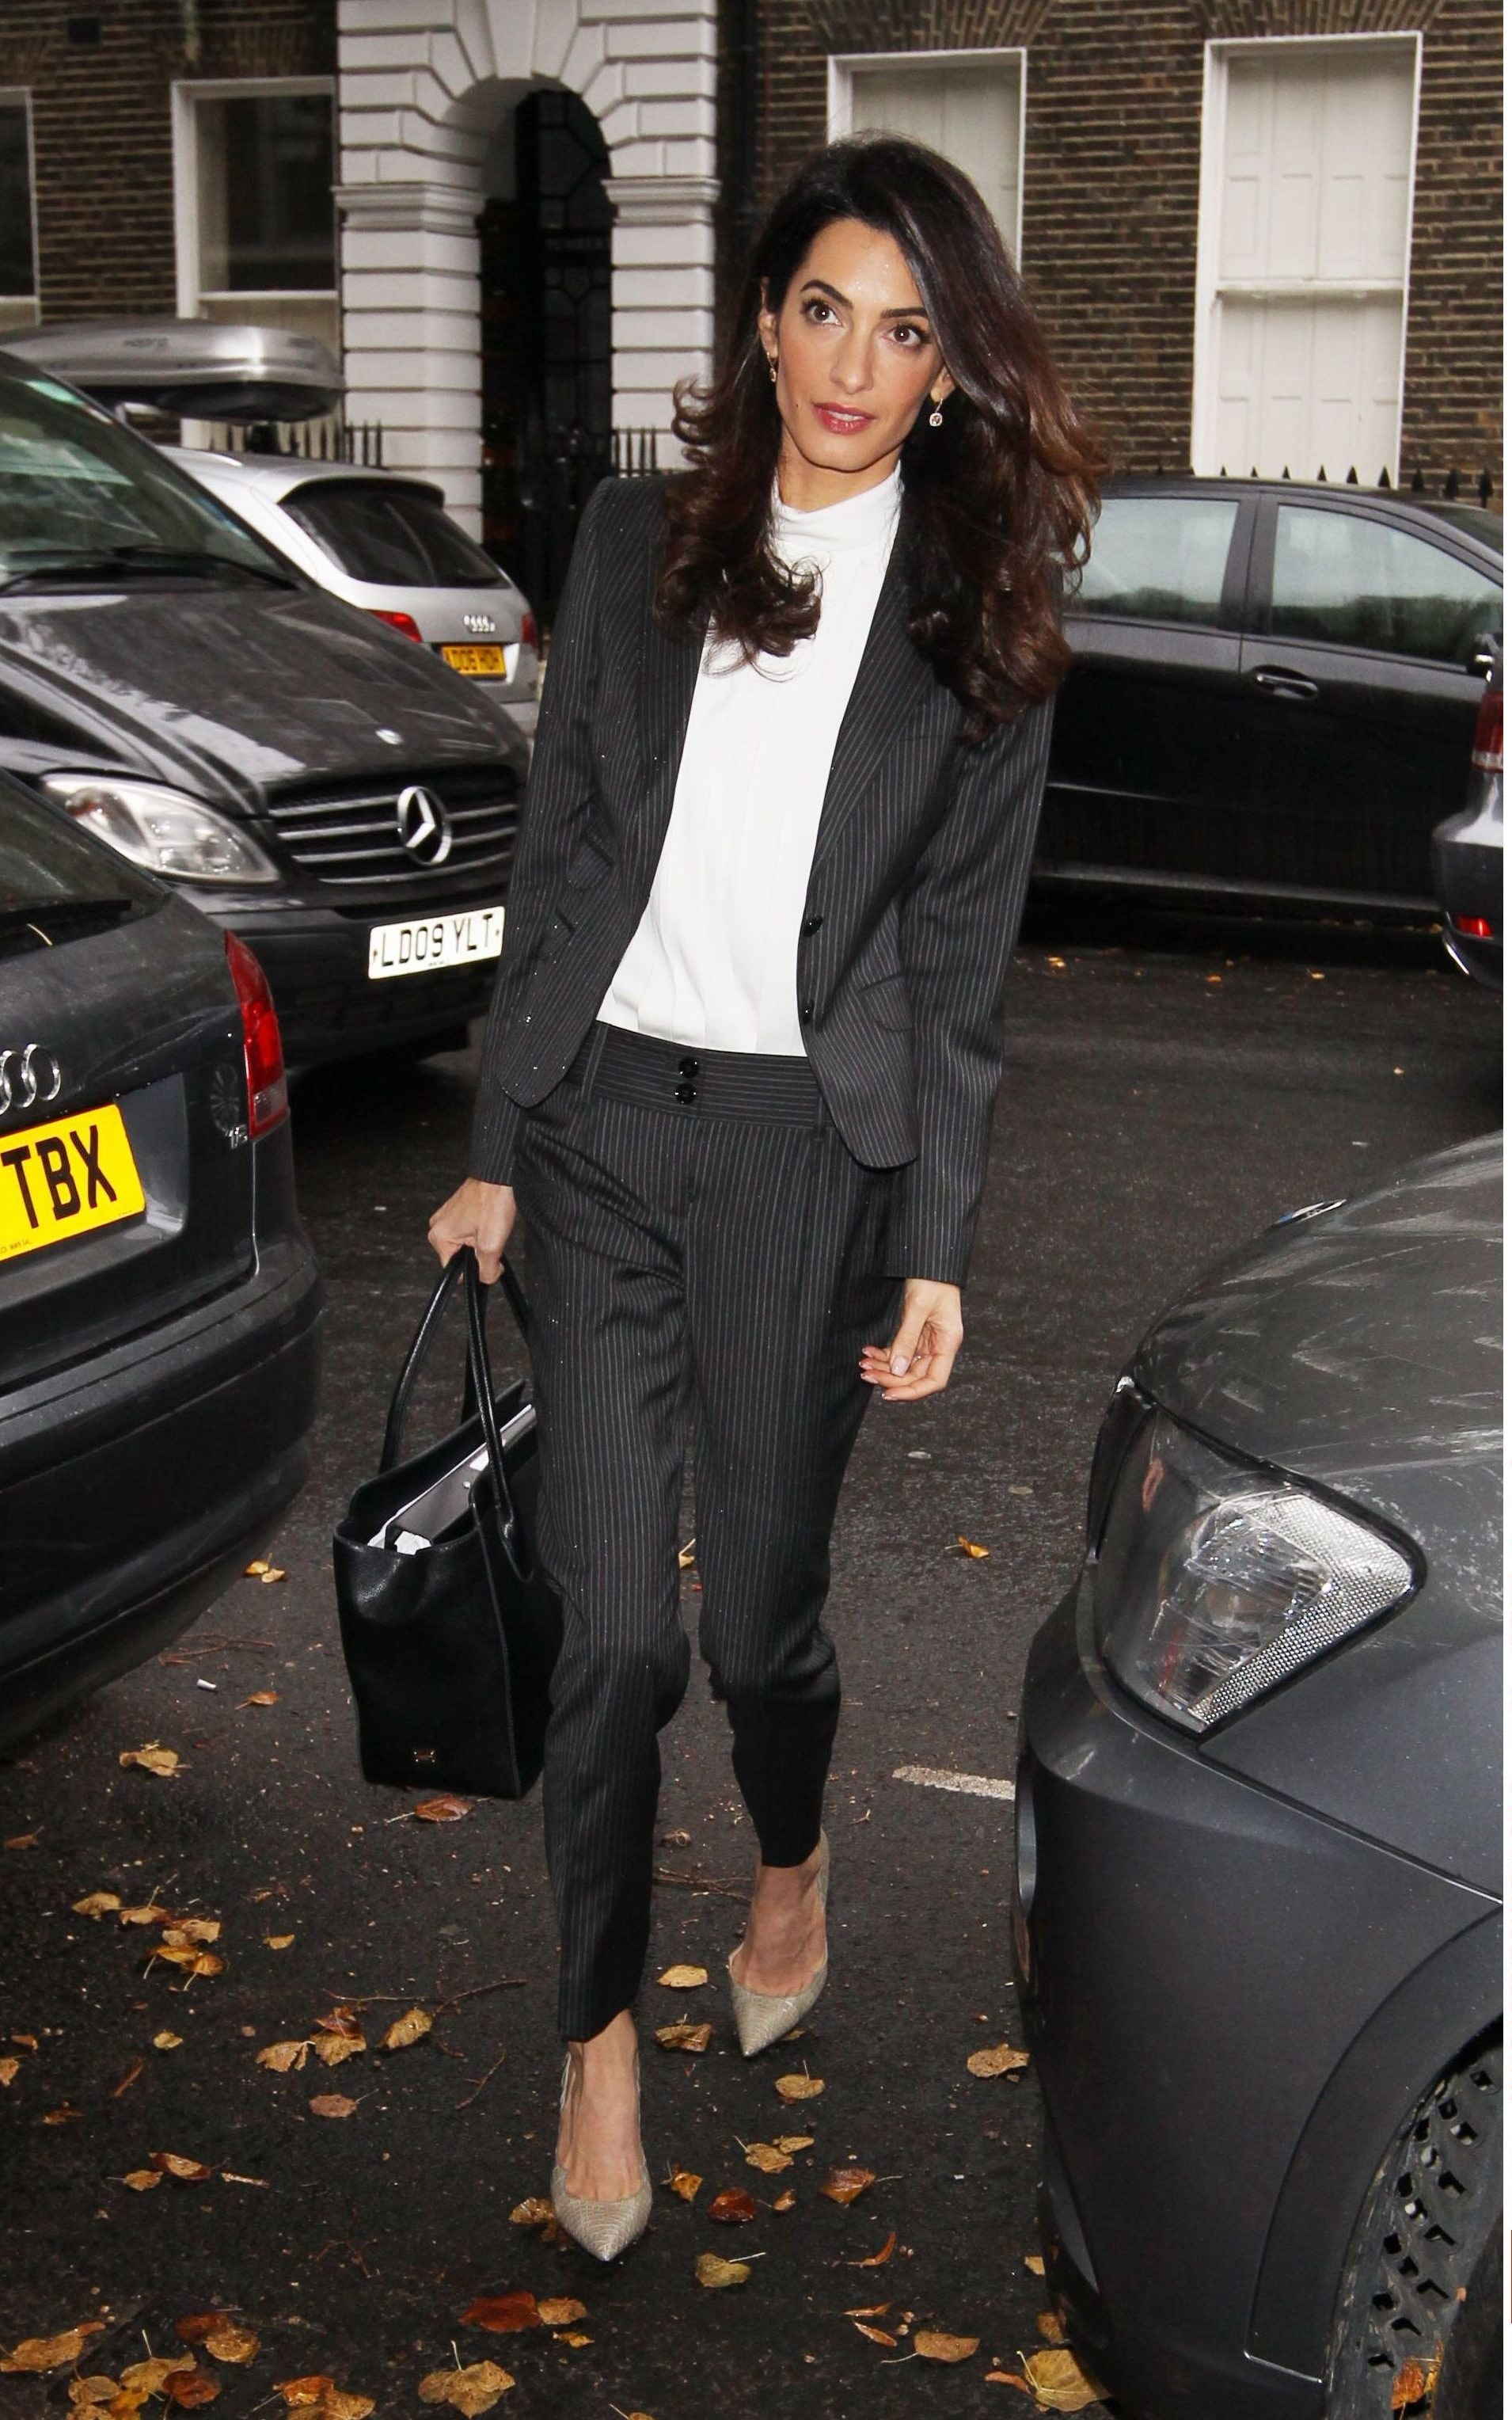 Amal Clooney wearing Dolce and Gabbana